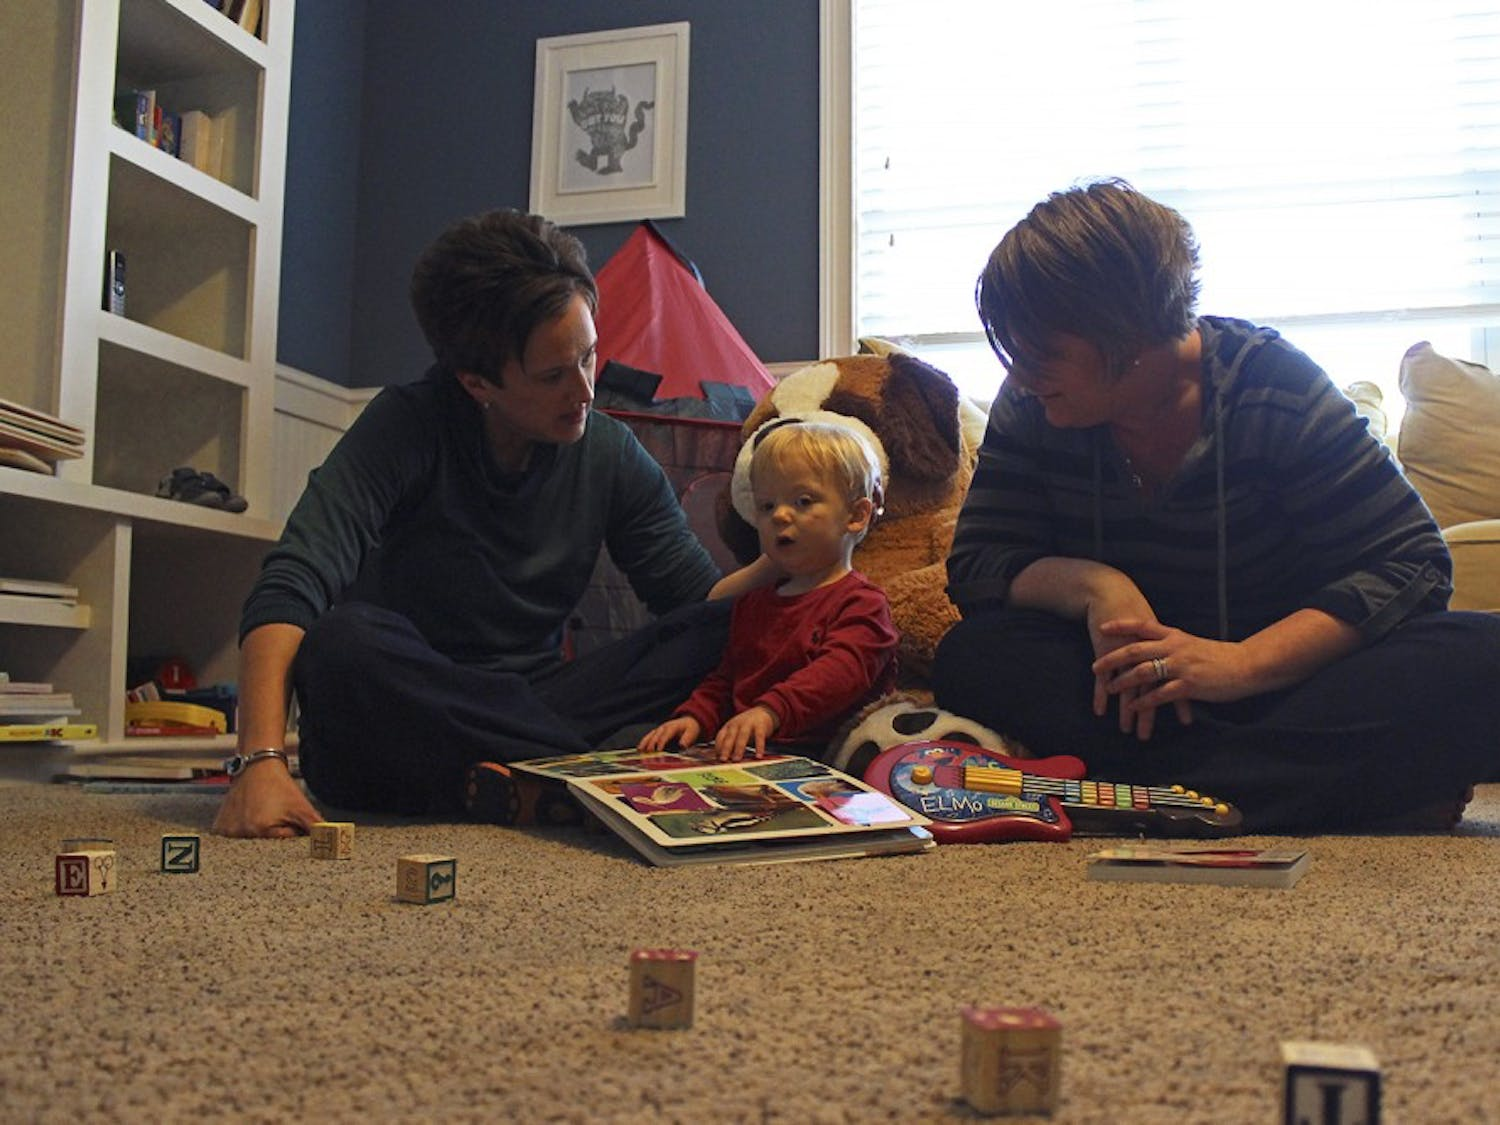 Jennifer Tharrington (left) and spouse Anna play with their son Jack, 18 months, in his play room in their home in Chapel Hill on Sunday, Feb. 15.